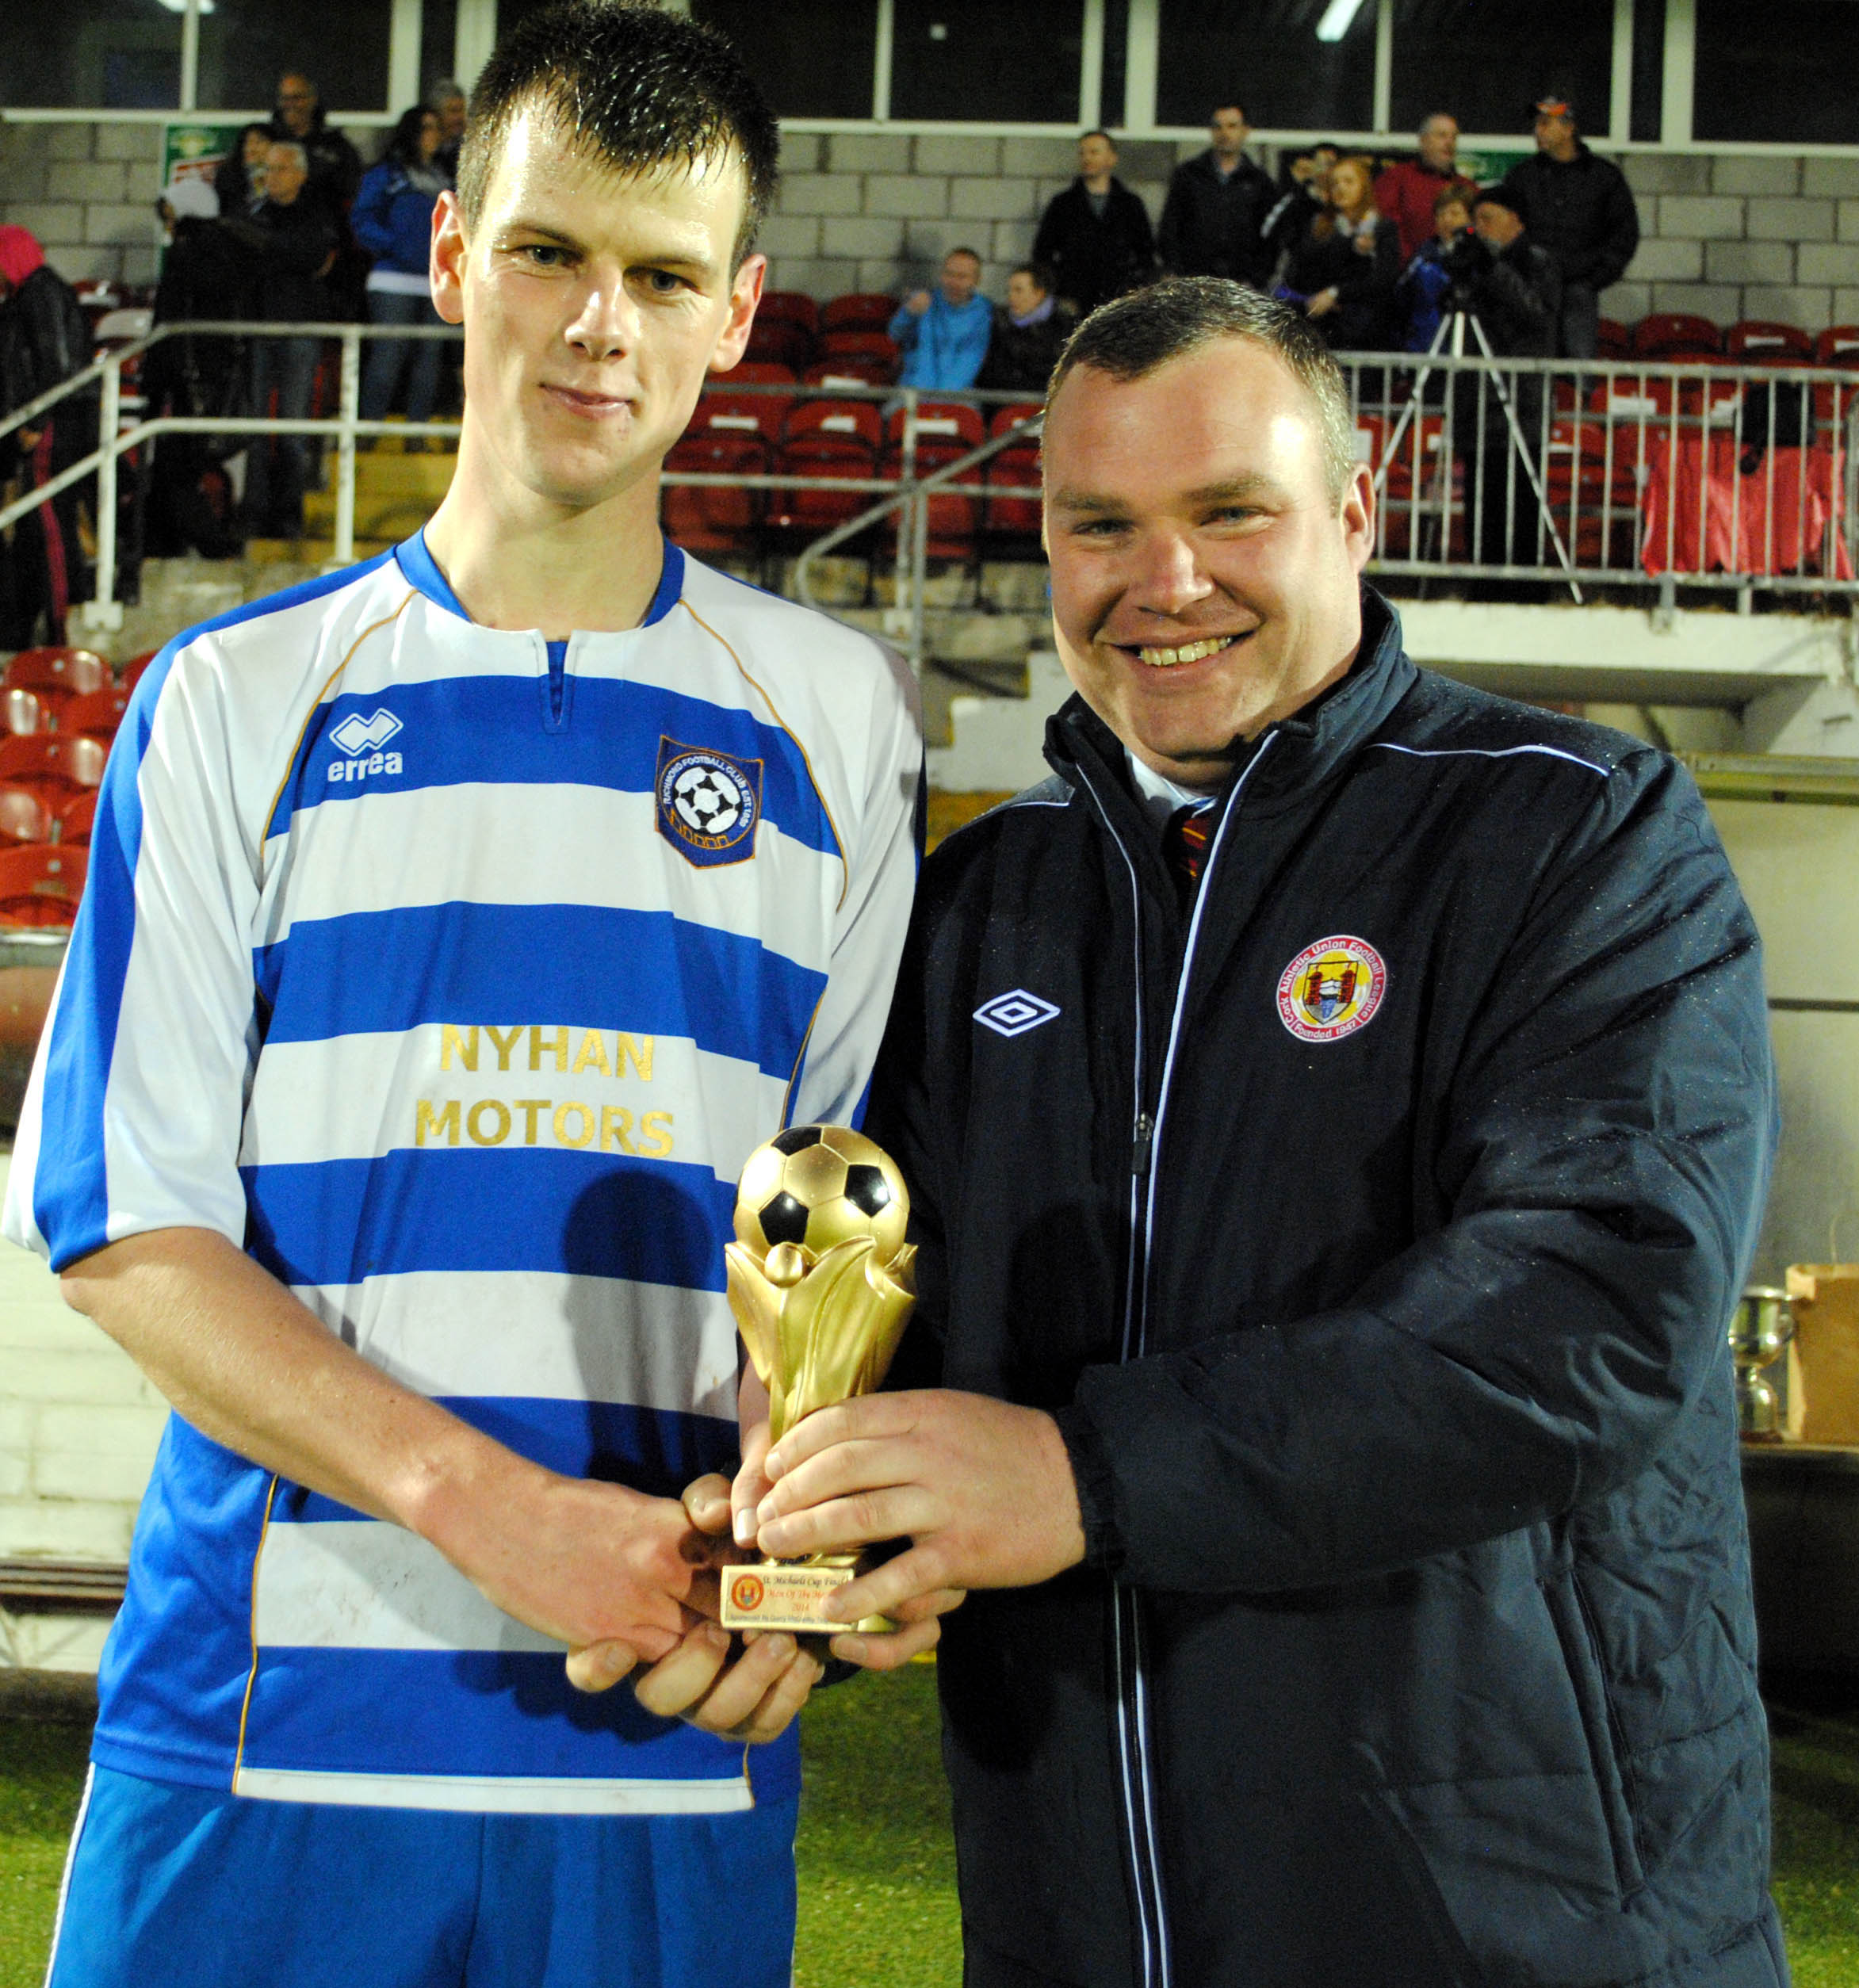 Man of the match - Sean Creedon